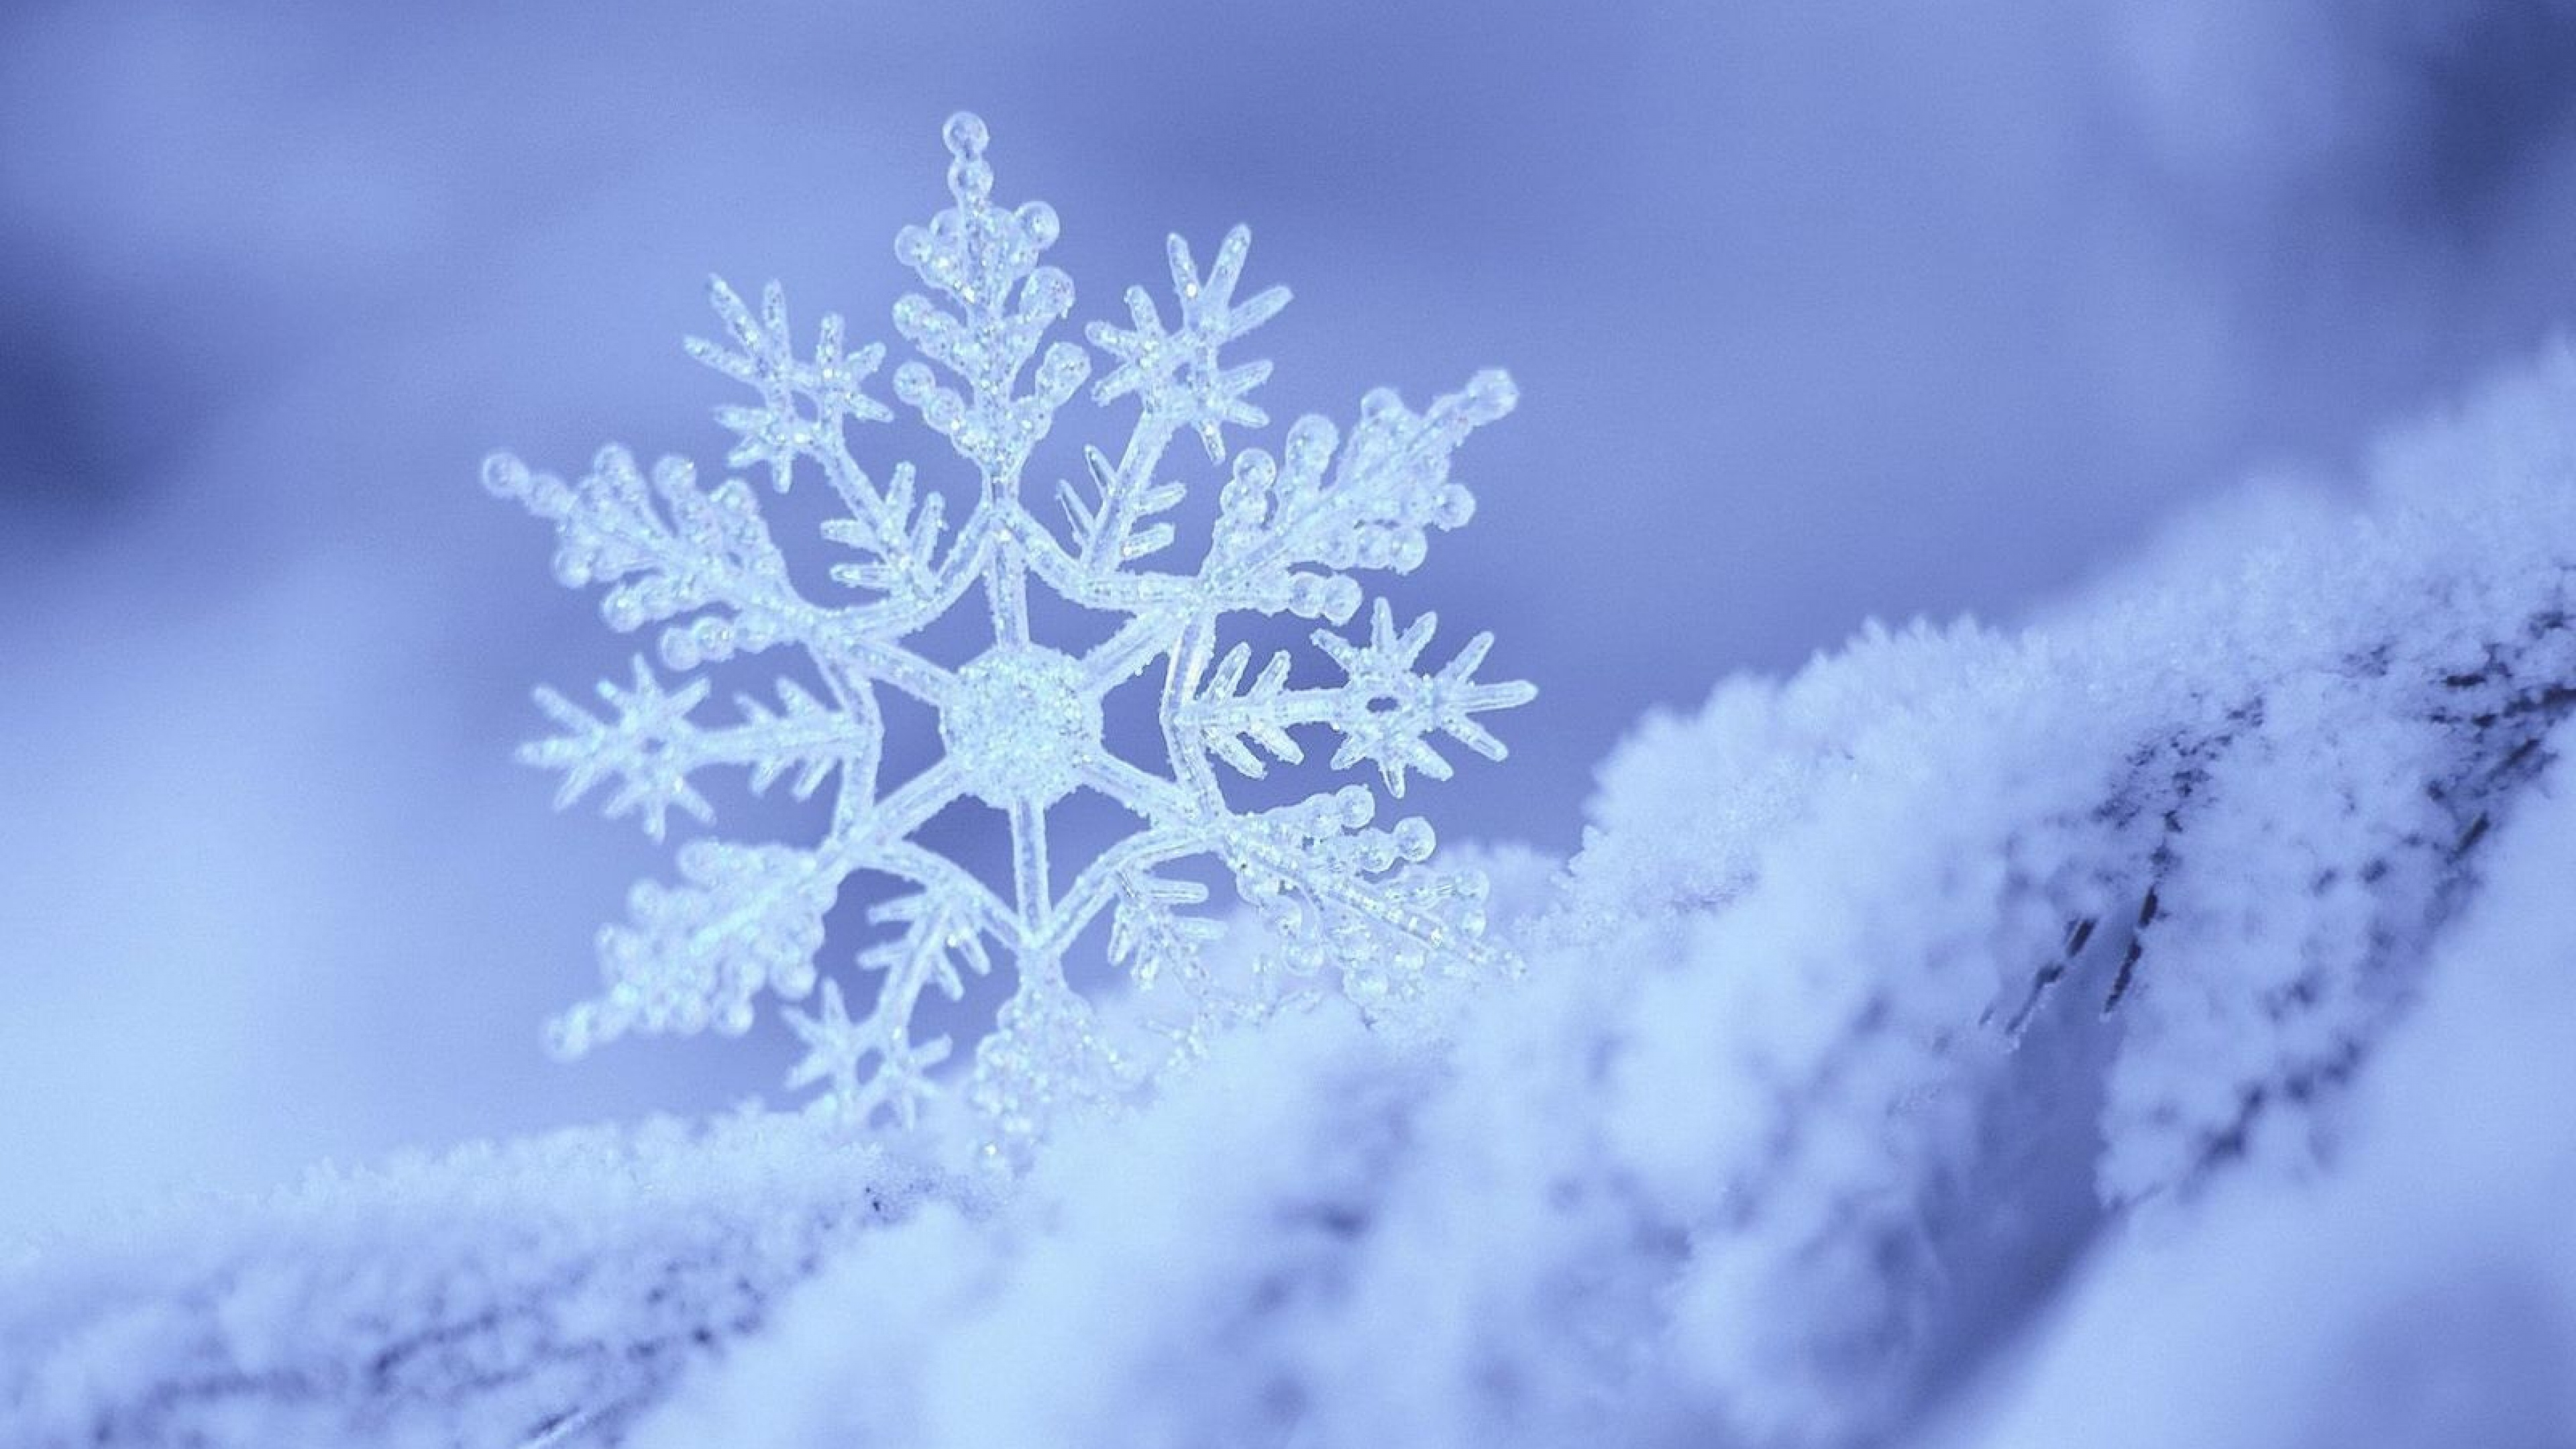 Download Wallpaper 3840x2160 snow snowflake winter form pattern 4K 3840x2160